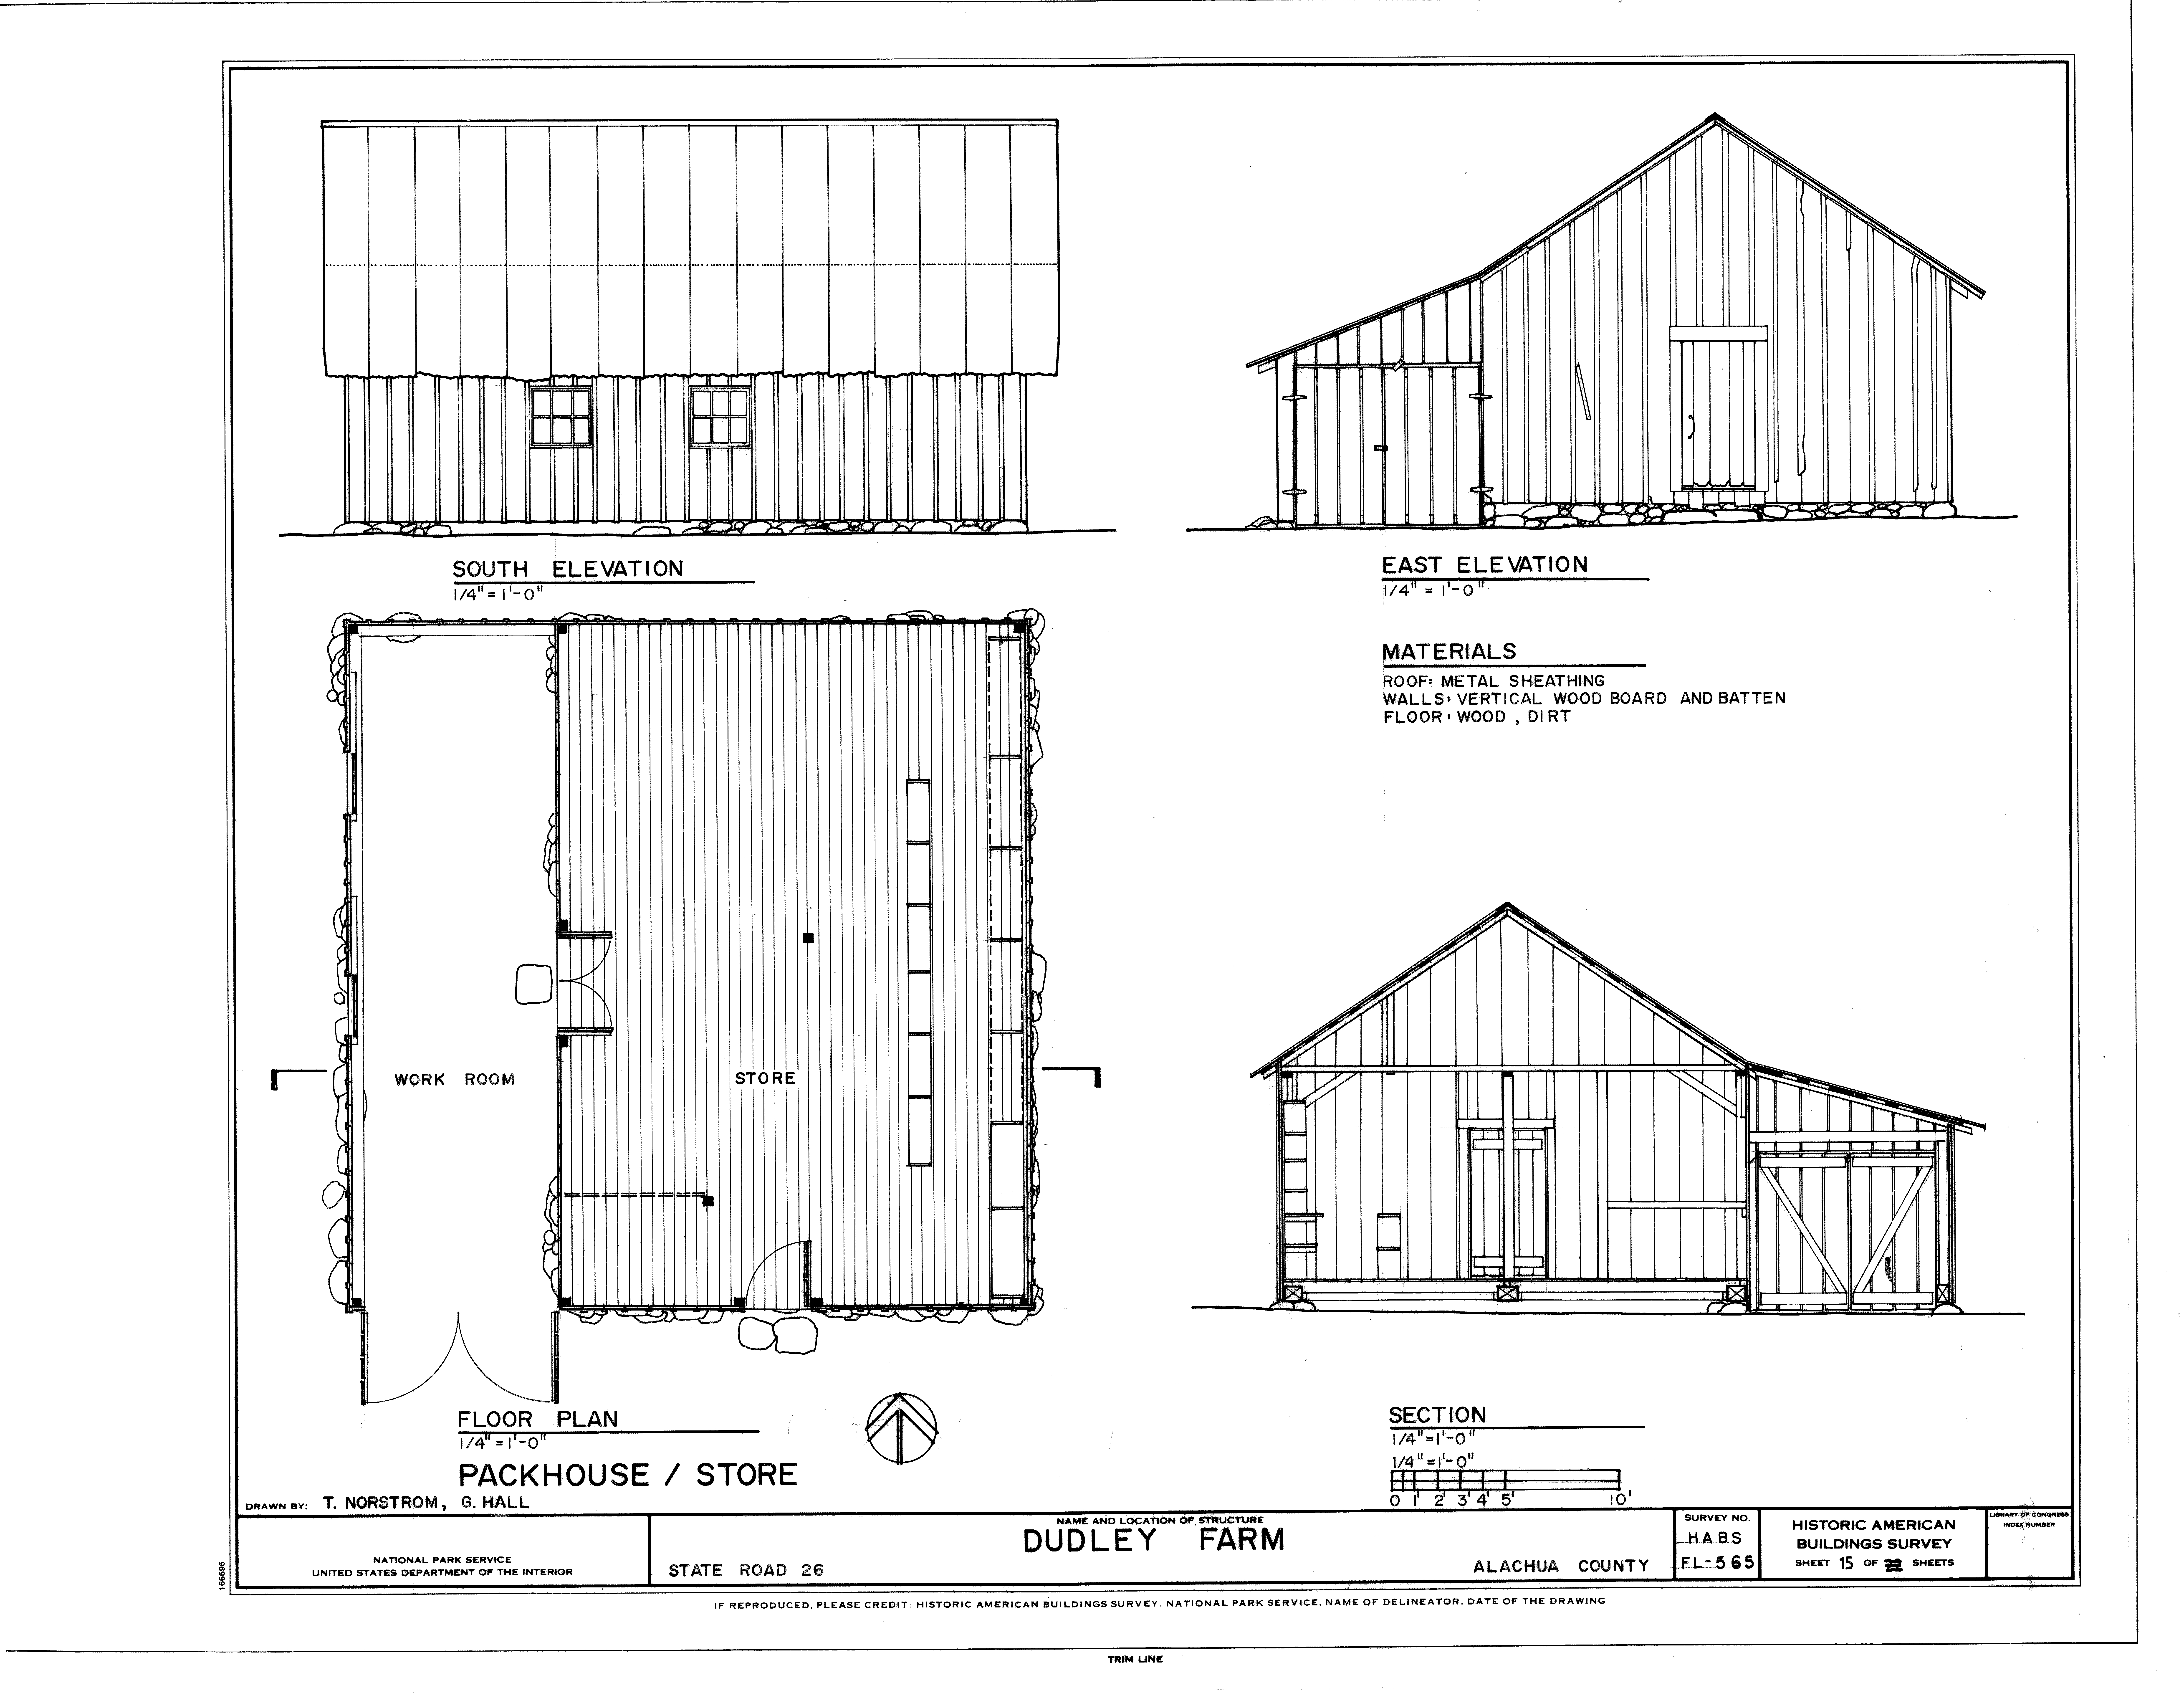 Front Elevation Of Floor Plan : File packhouse storehouse elevations floor plan and